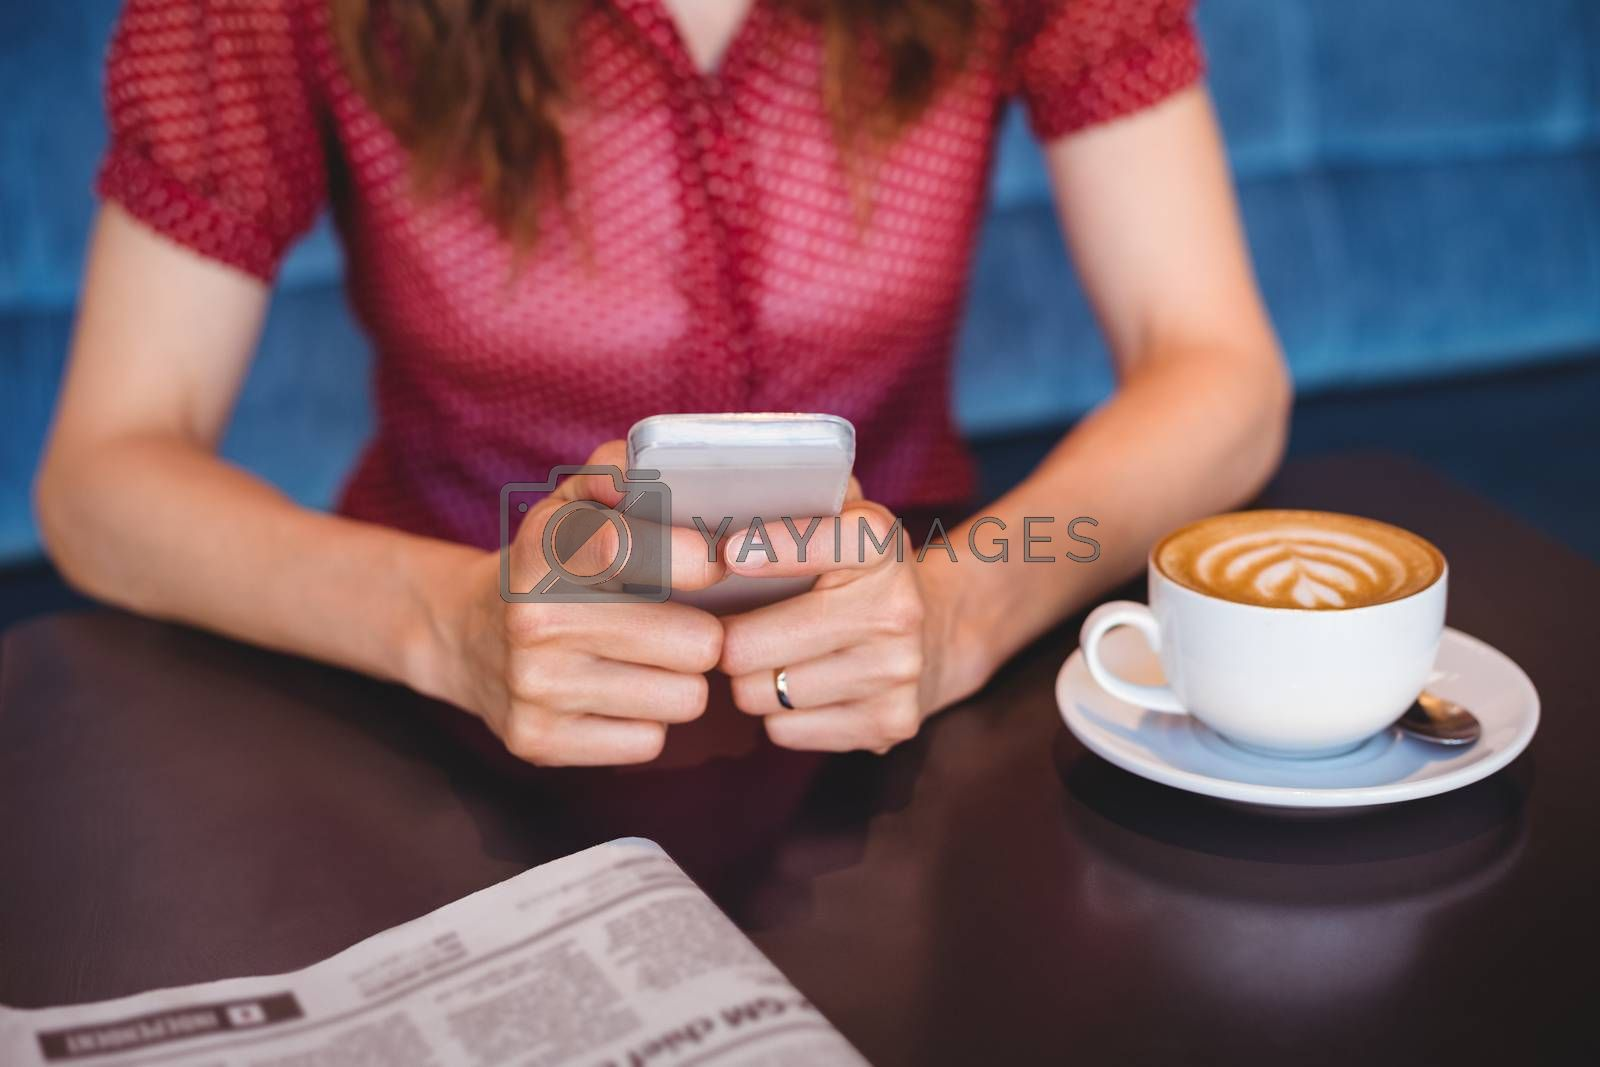 Royalty free image of close up view of a table  by Wavebreakmedia